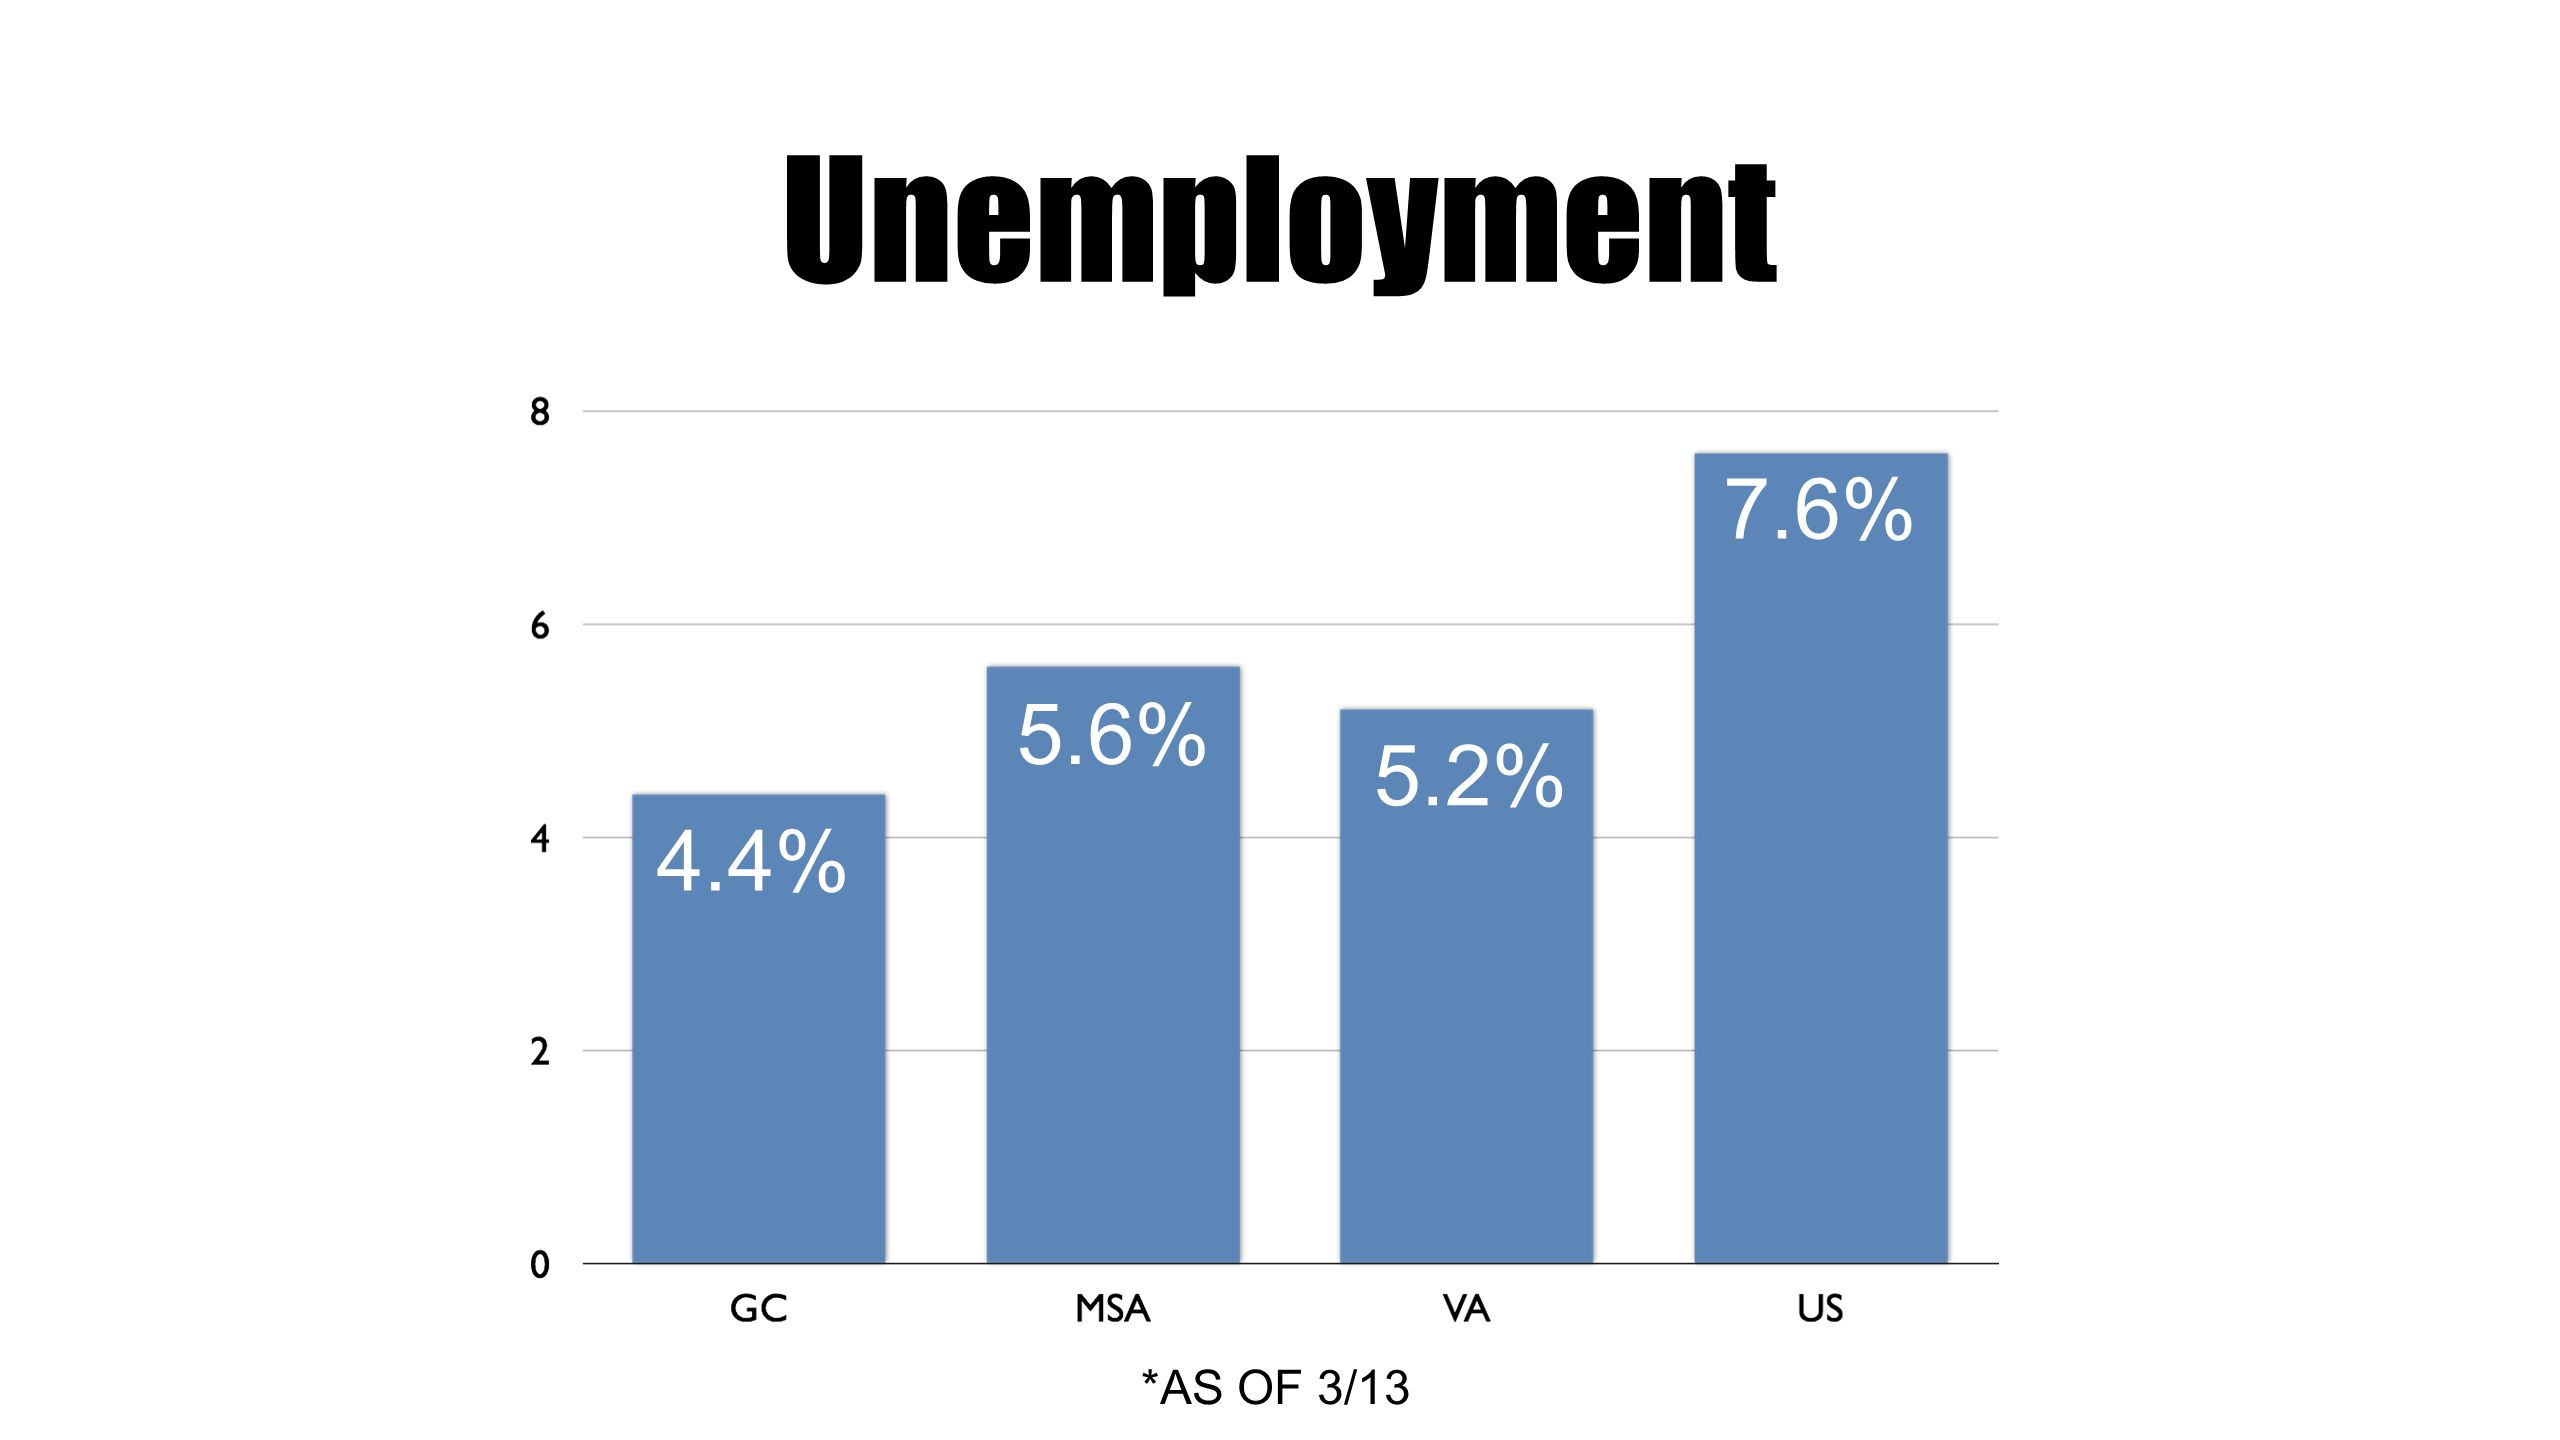 Unemployment *AS OF 3/13 4.4% 5.6% 7.6% 5.2% 1460